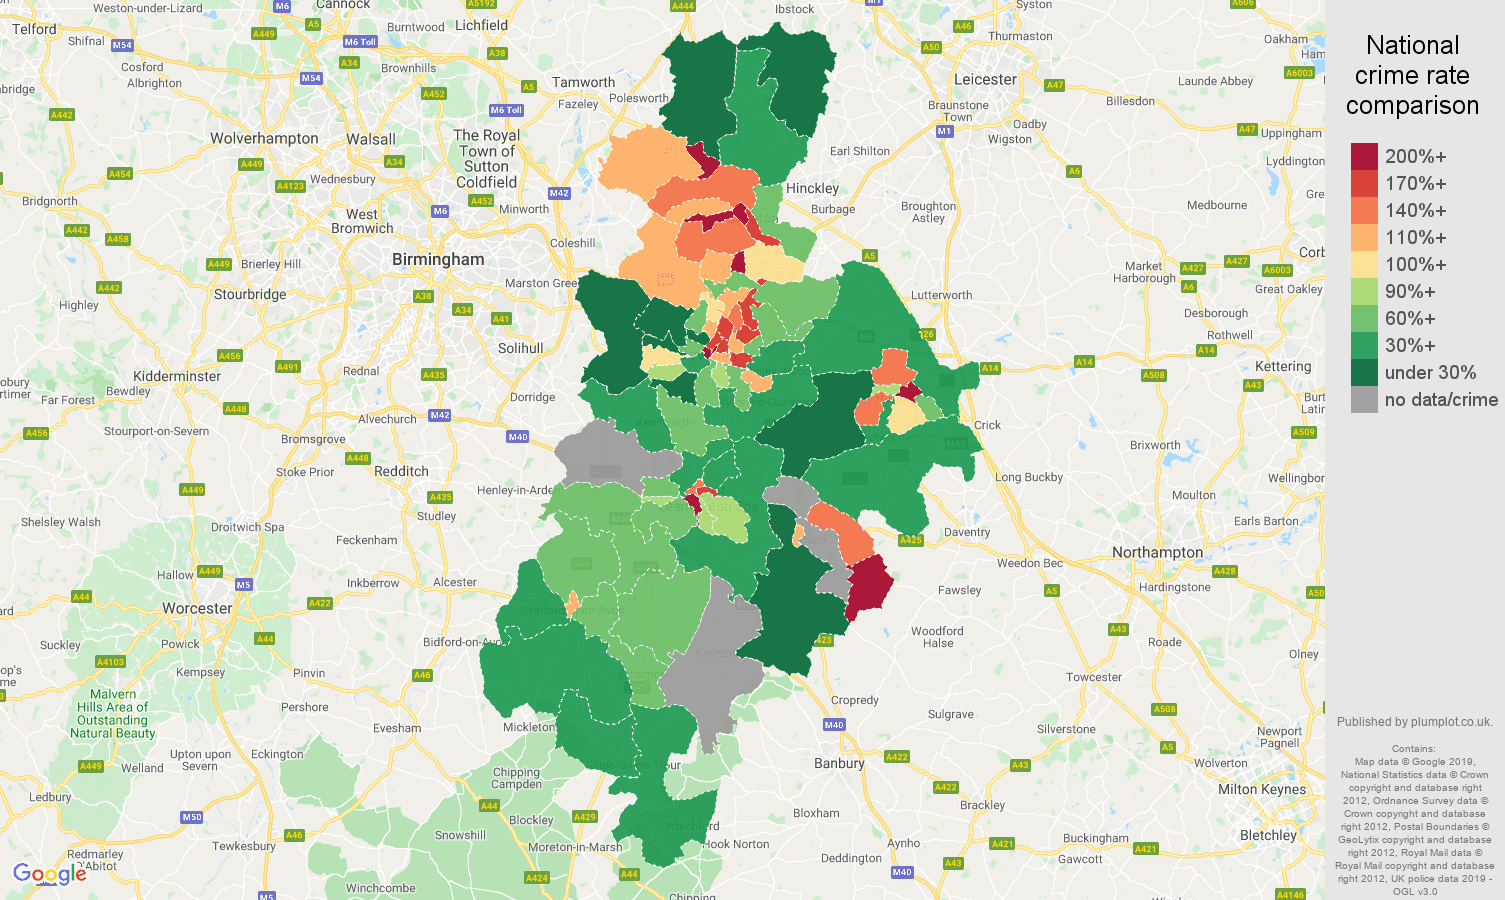 Coventry possession of weapons crime rate comparison map